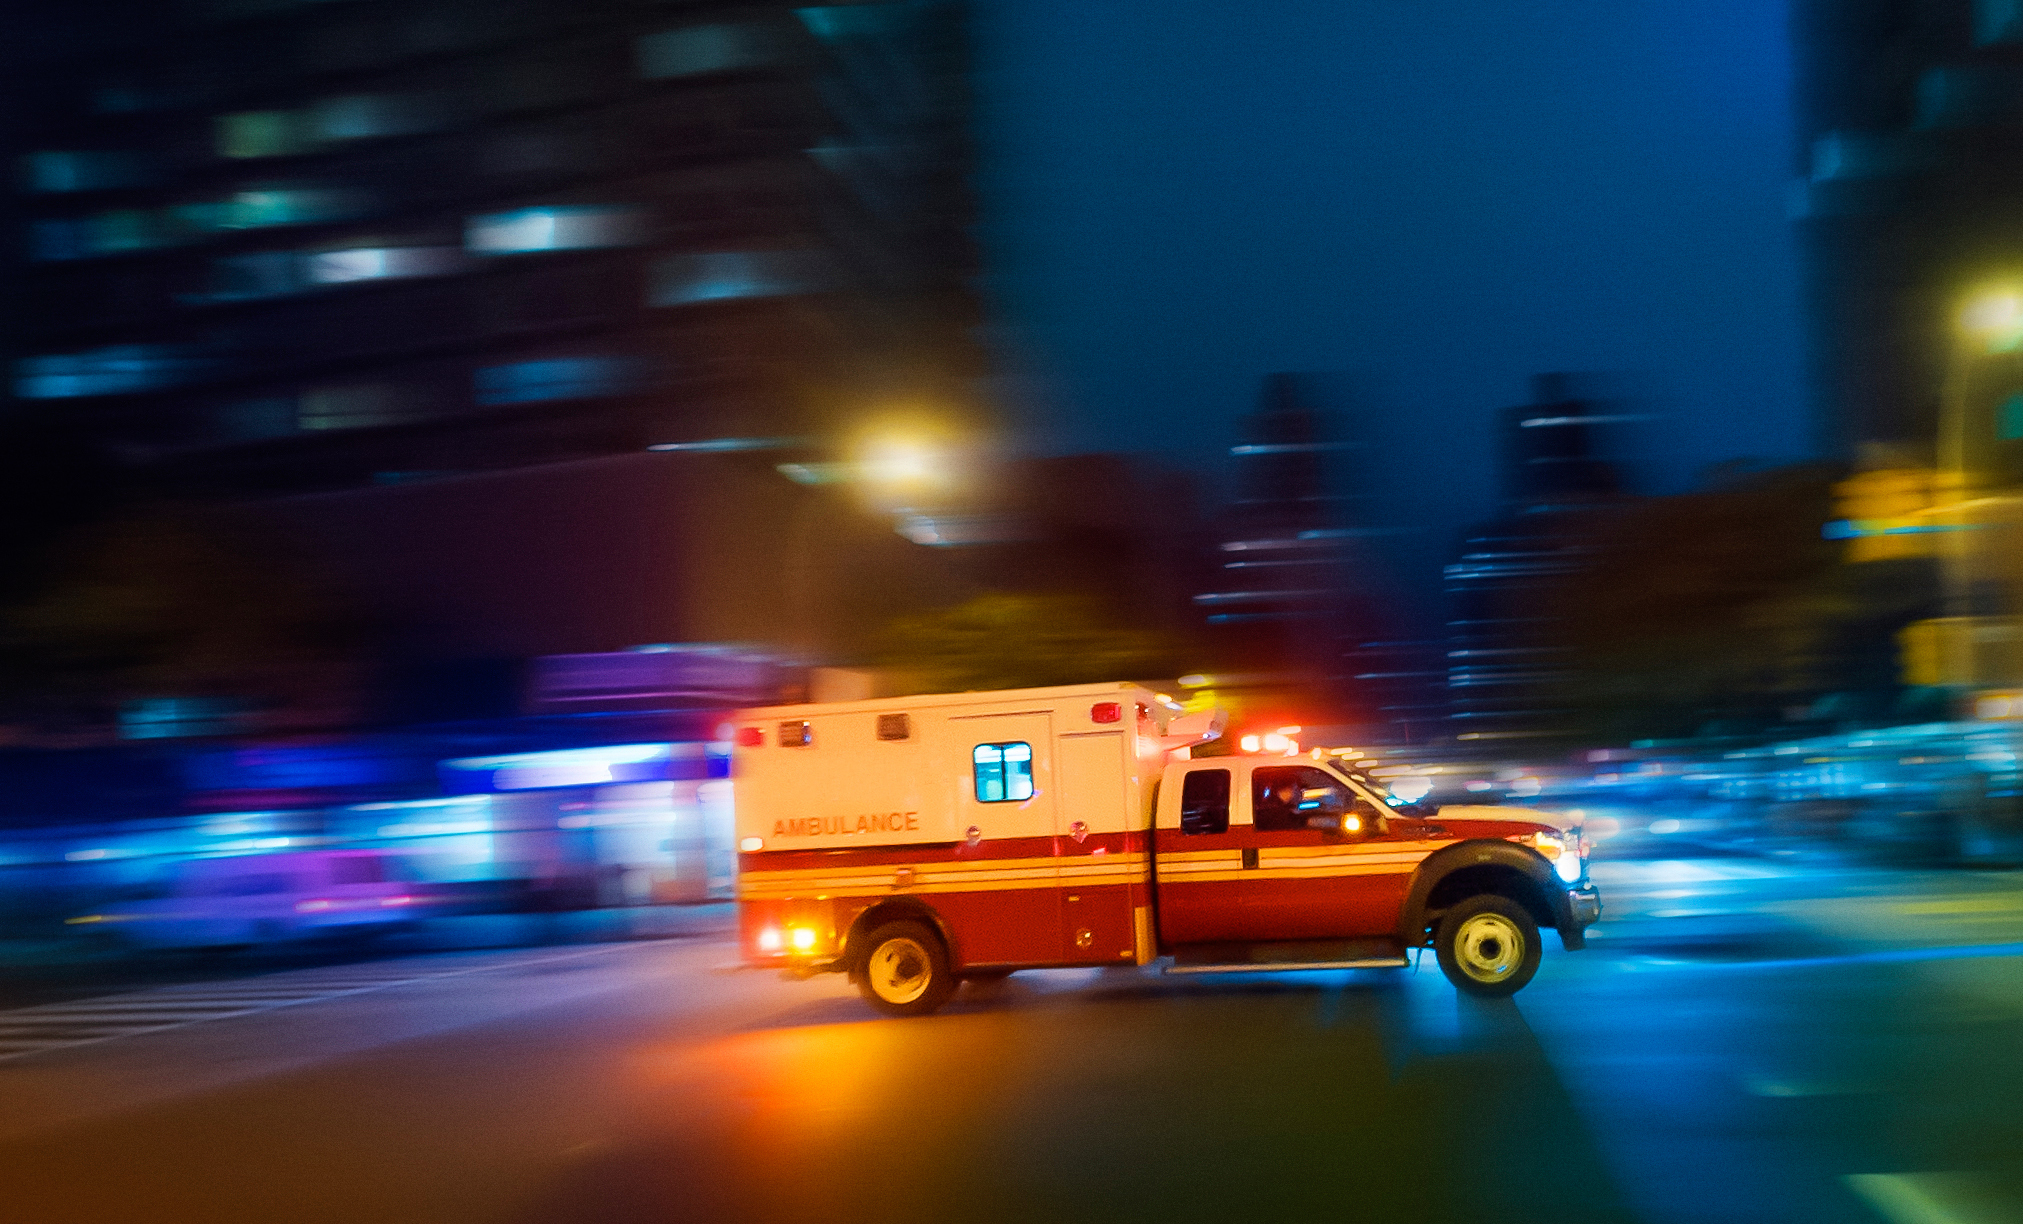 Paramedic Shares His Wild Ride Treating A Thousand Naked Strangers Shots Health News Npr Call an ambulance but not for me like this content? thousand naked strangers